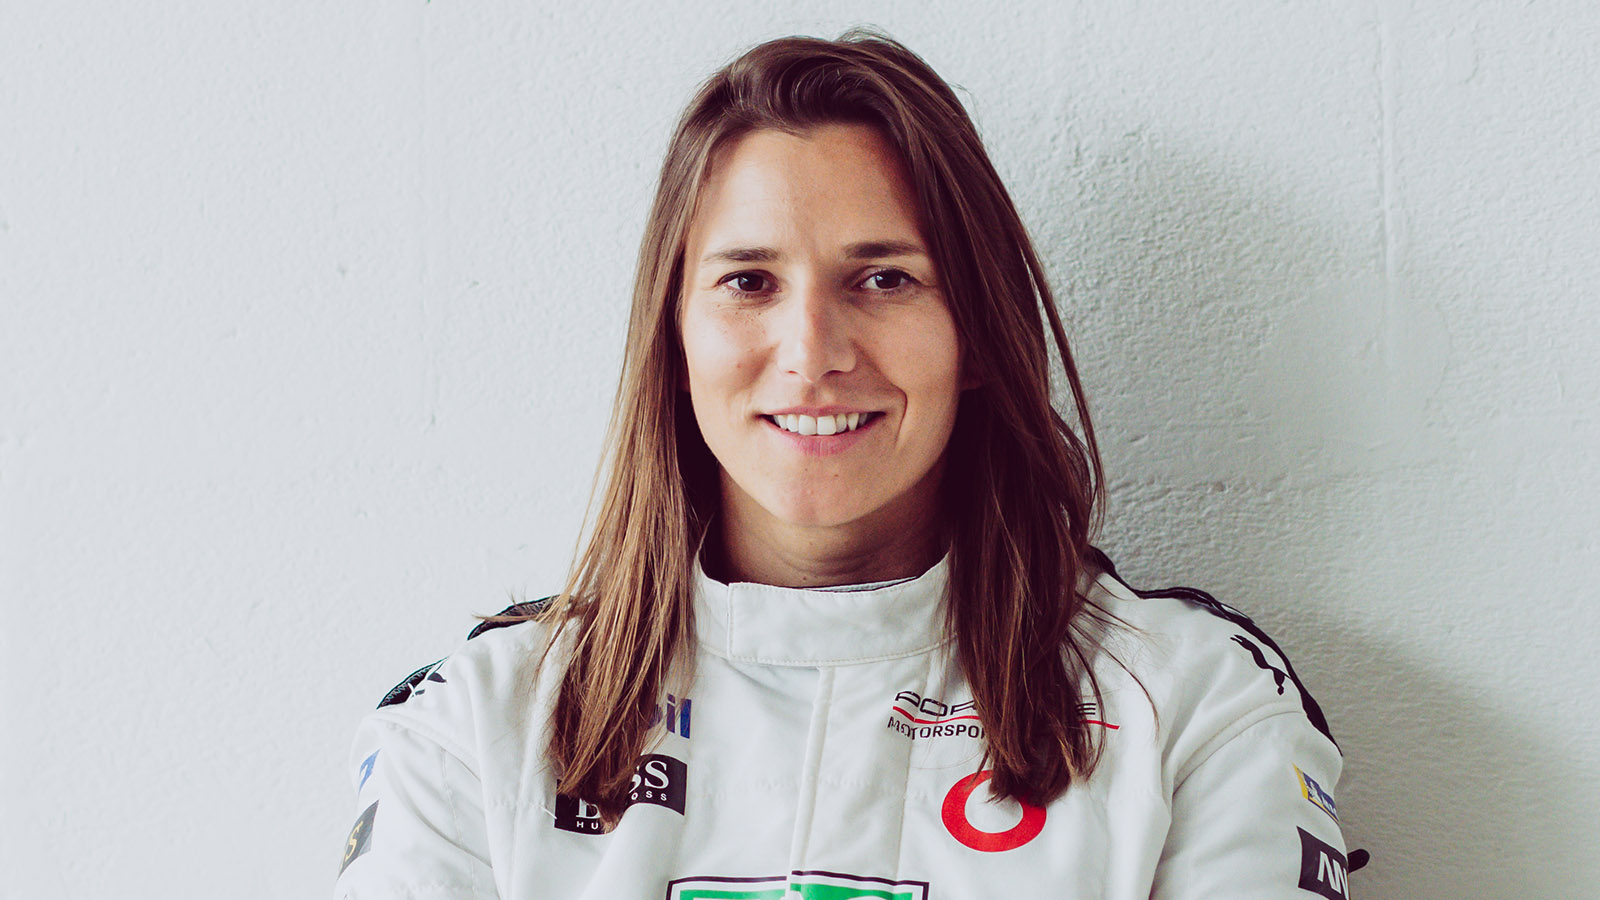 Porsche - Simona De Silvestro (test and development driver) SUI